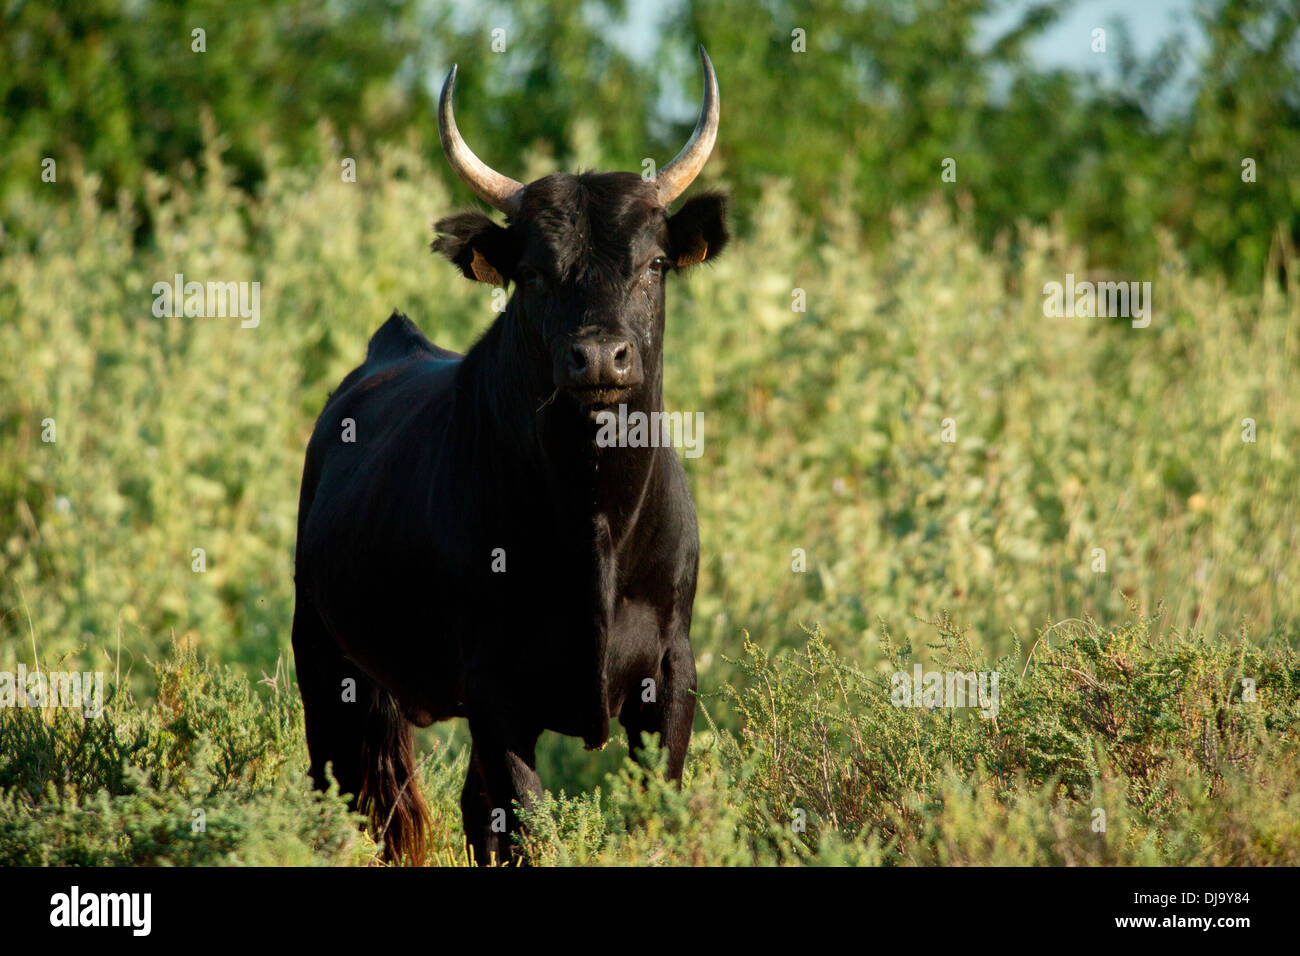 Camargue Cattle, France - Stock Image